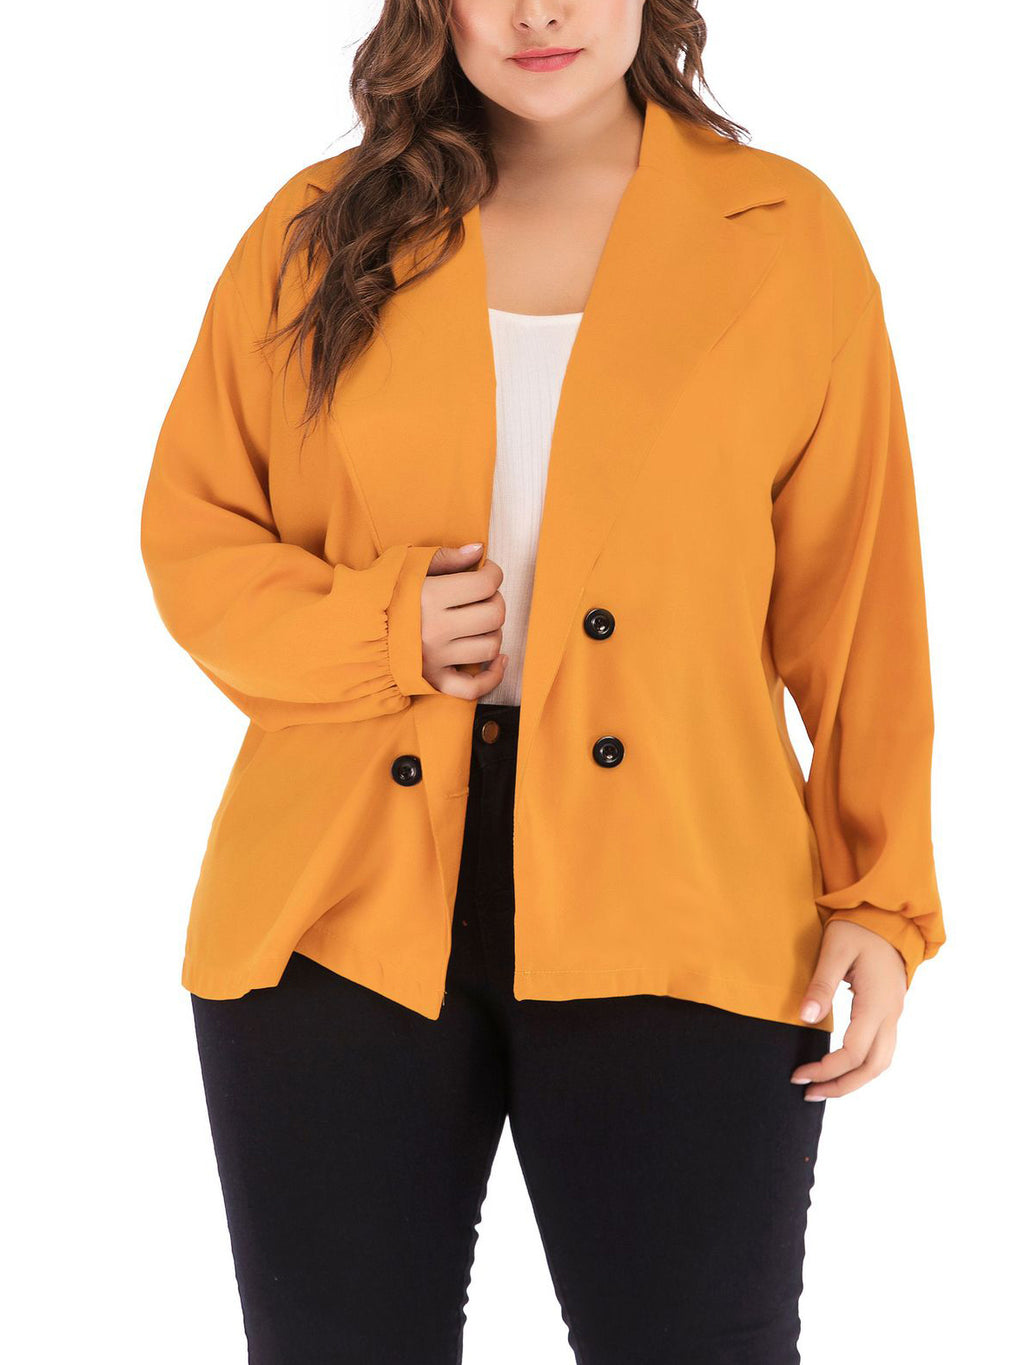 Fashion Large Size Women's Lapel Jacket